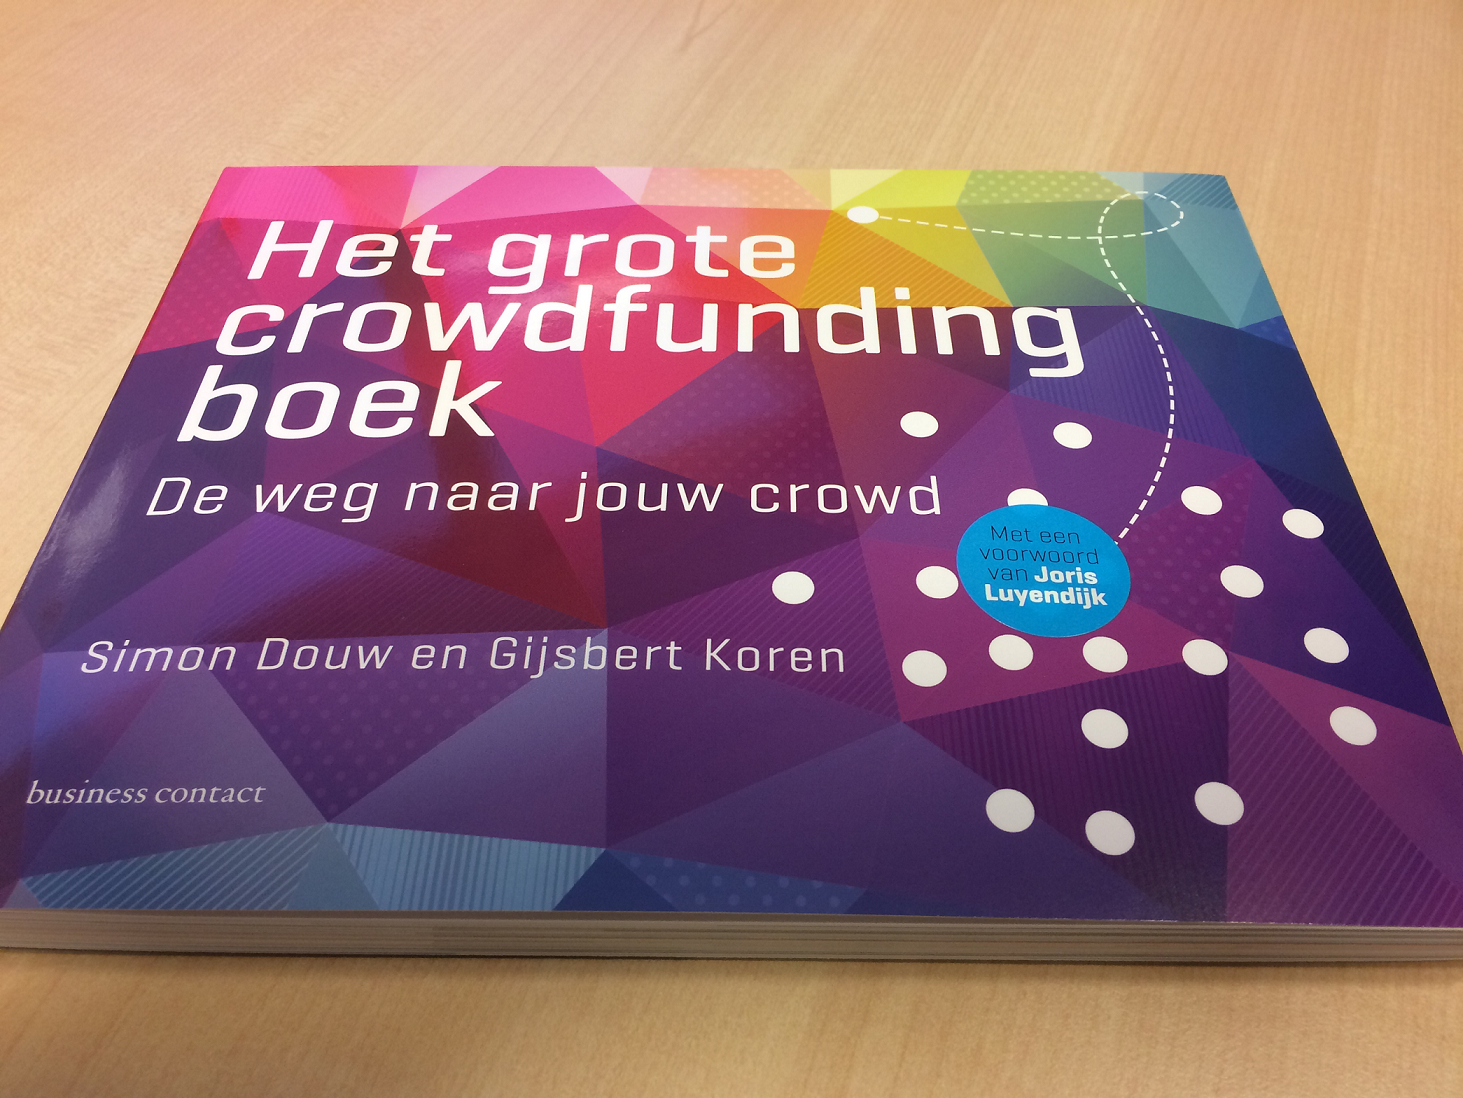 crowdfunding, financieren, bedrijfsfinanciering